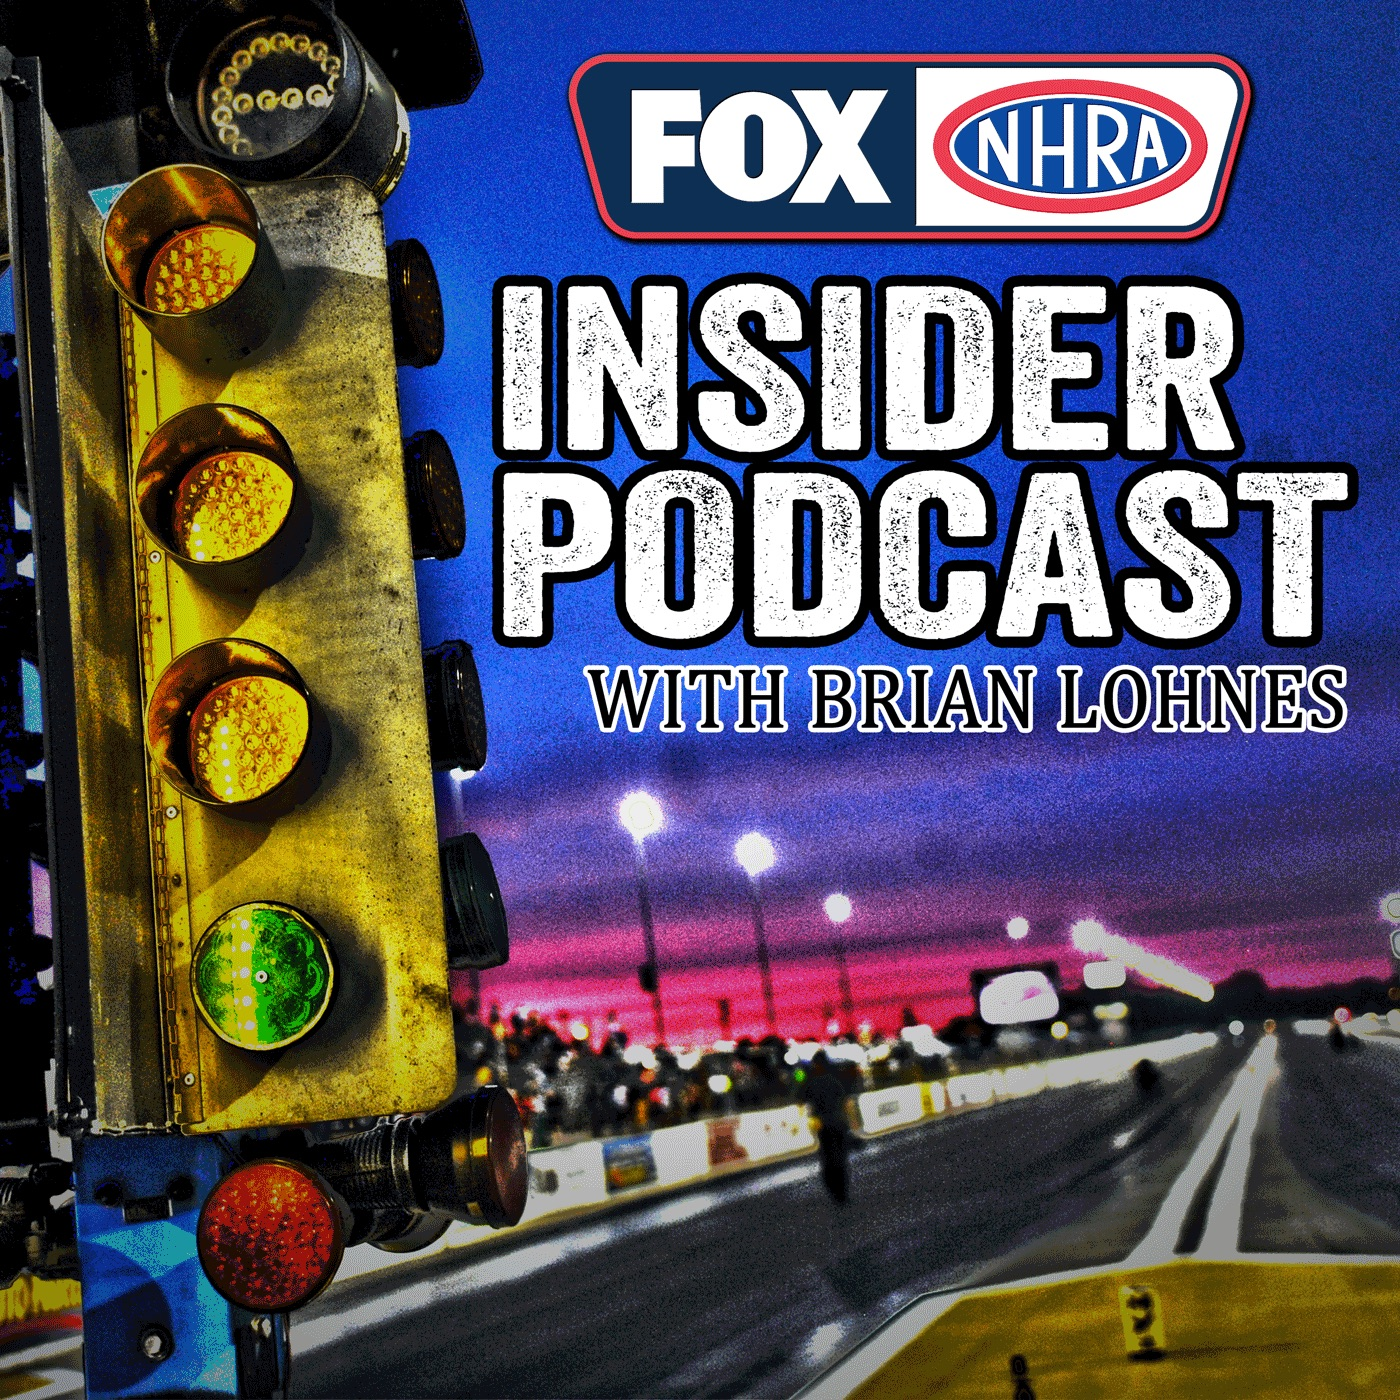 NHRA Insider Podcast: A Conversation With Dr. Jamie Meyer the New President of PRI (Performance Racing Industry) – Listen Up!